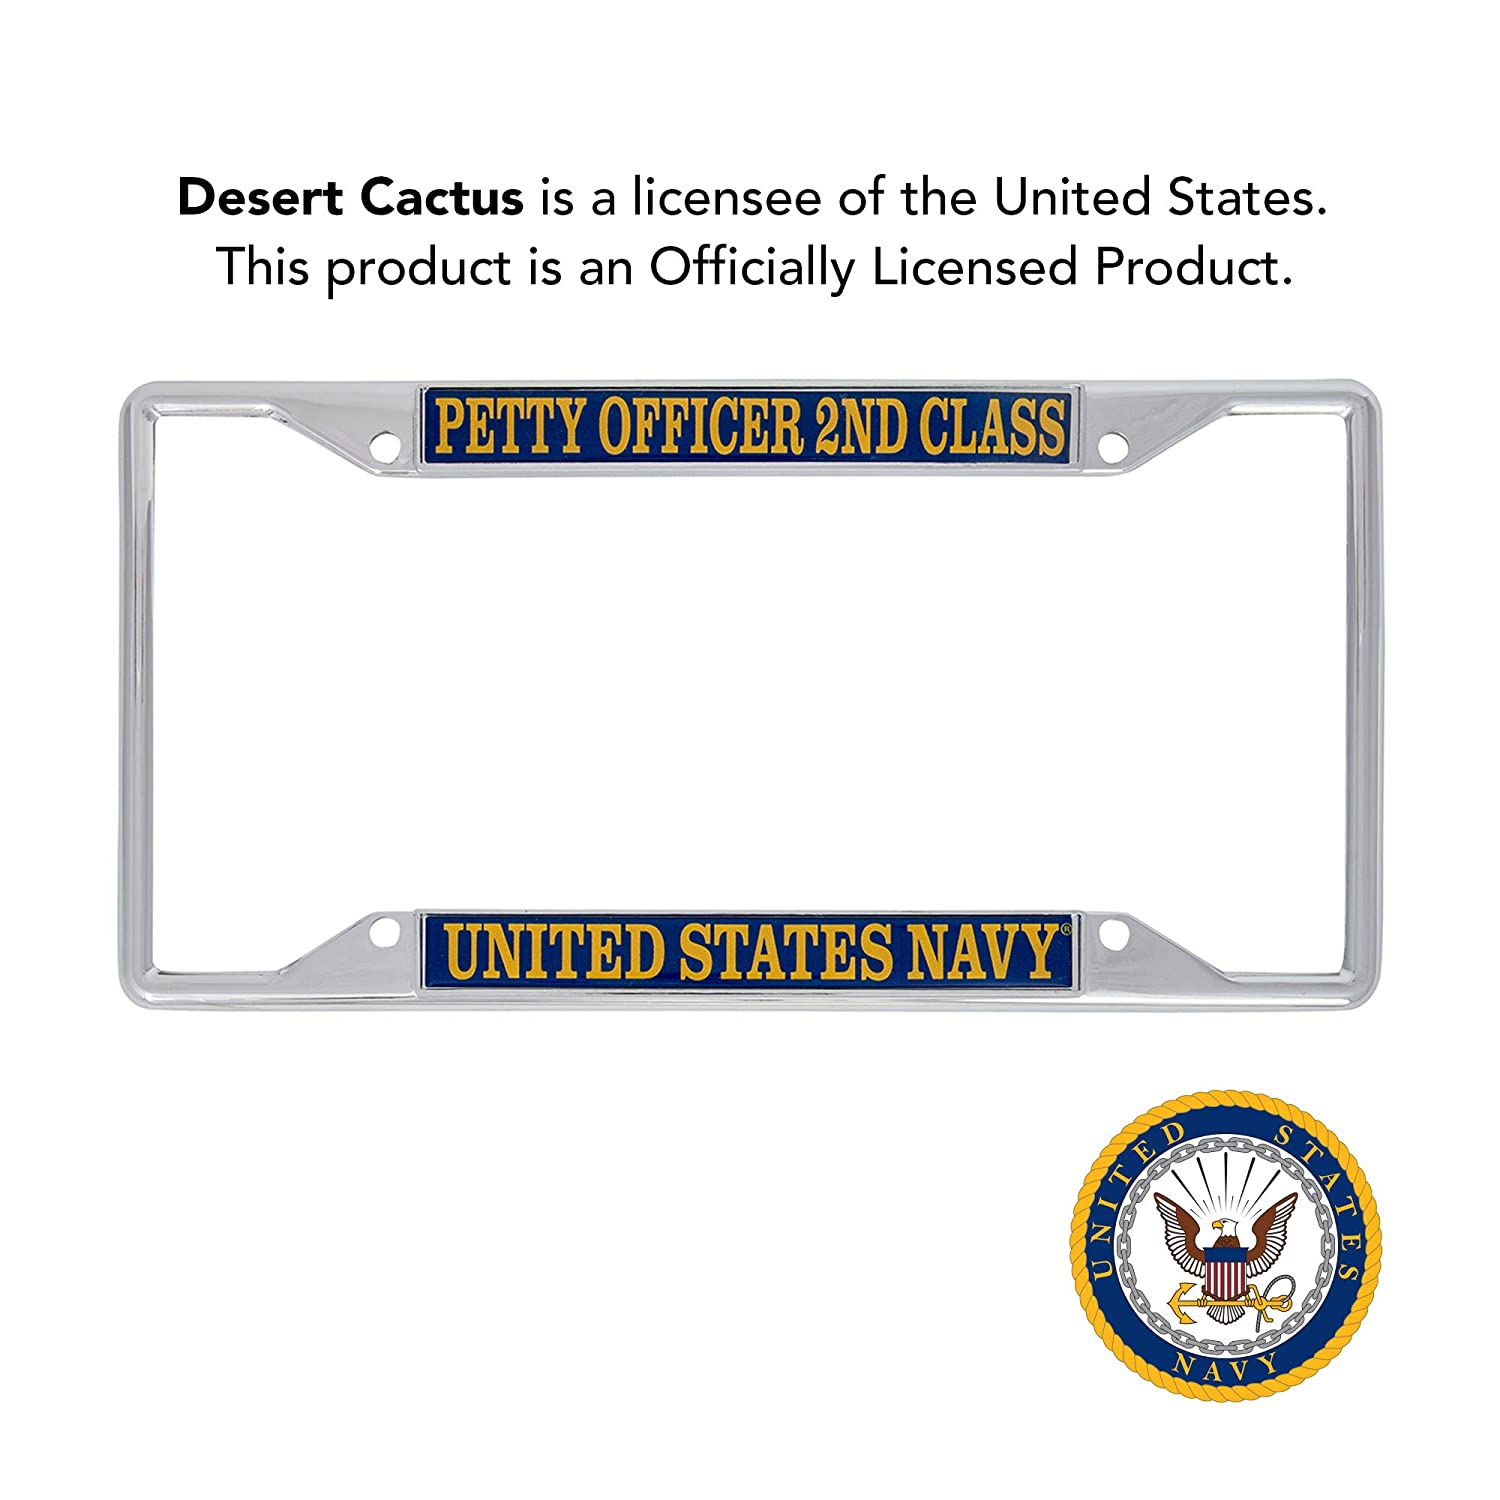 Desert Cactus US Navy Petty Officer 2nd Class Enlisted Grades License Plate Frame for Front Back of Car Officially Licensed United States